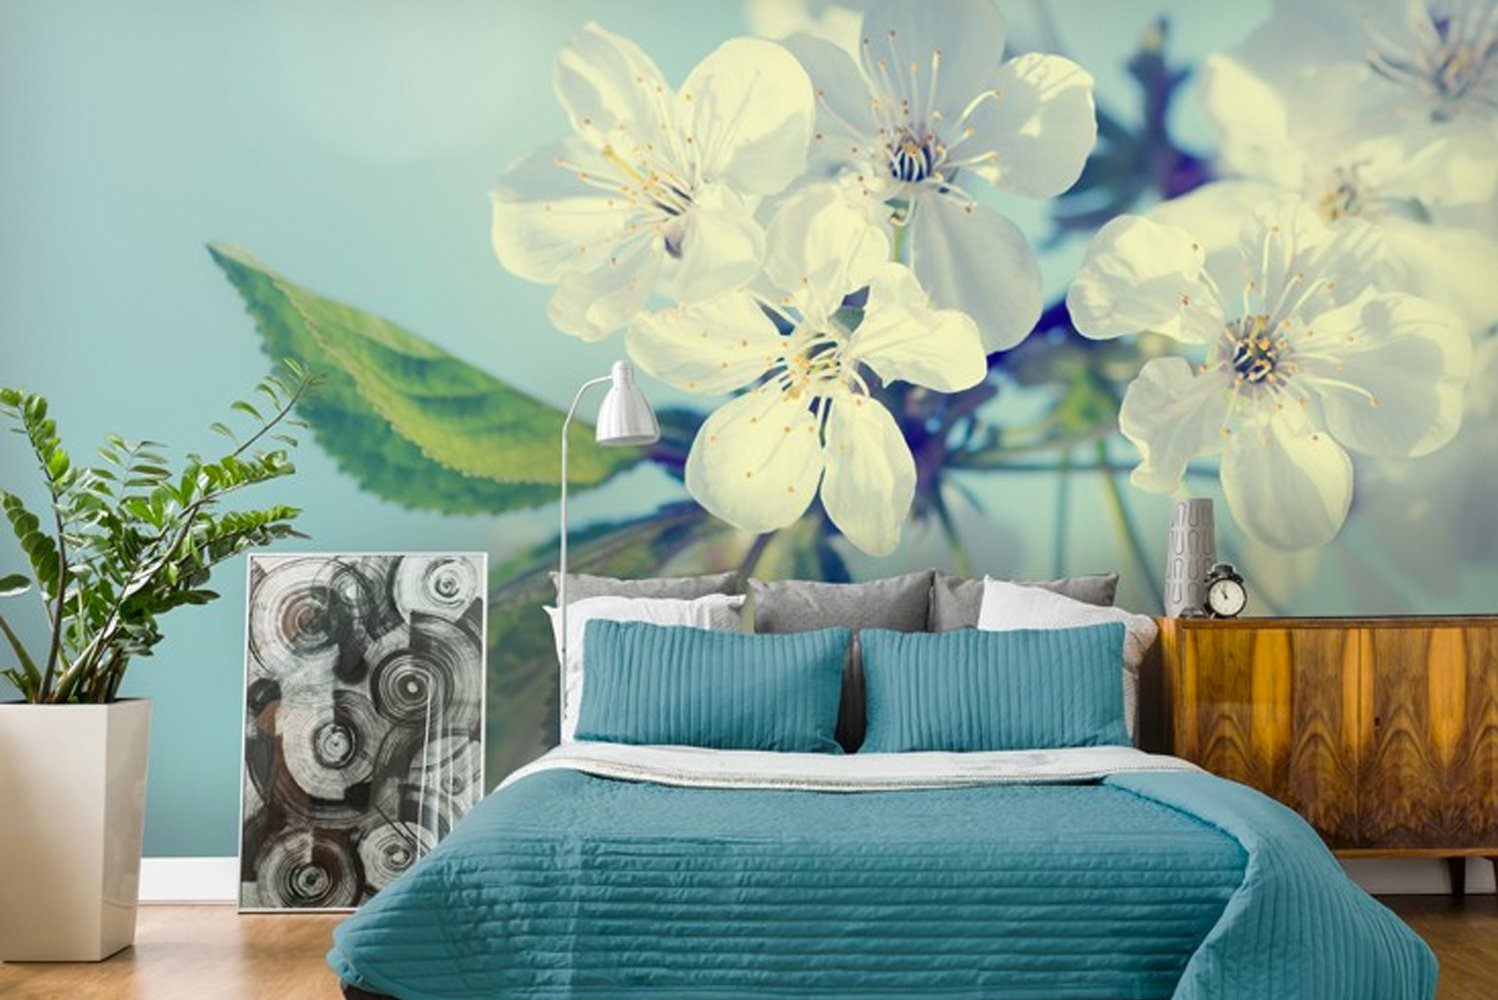 Introducing the antimicrobial and antibacterial wallpapers by Wallsauce.